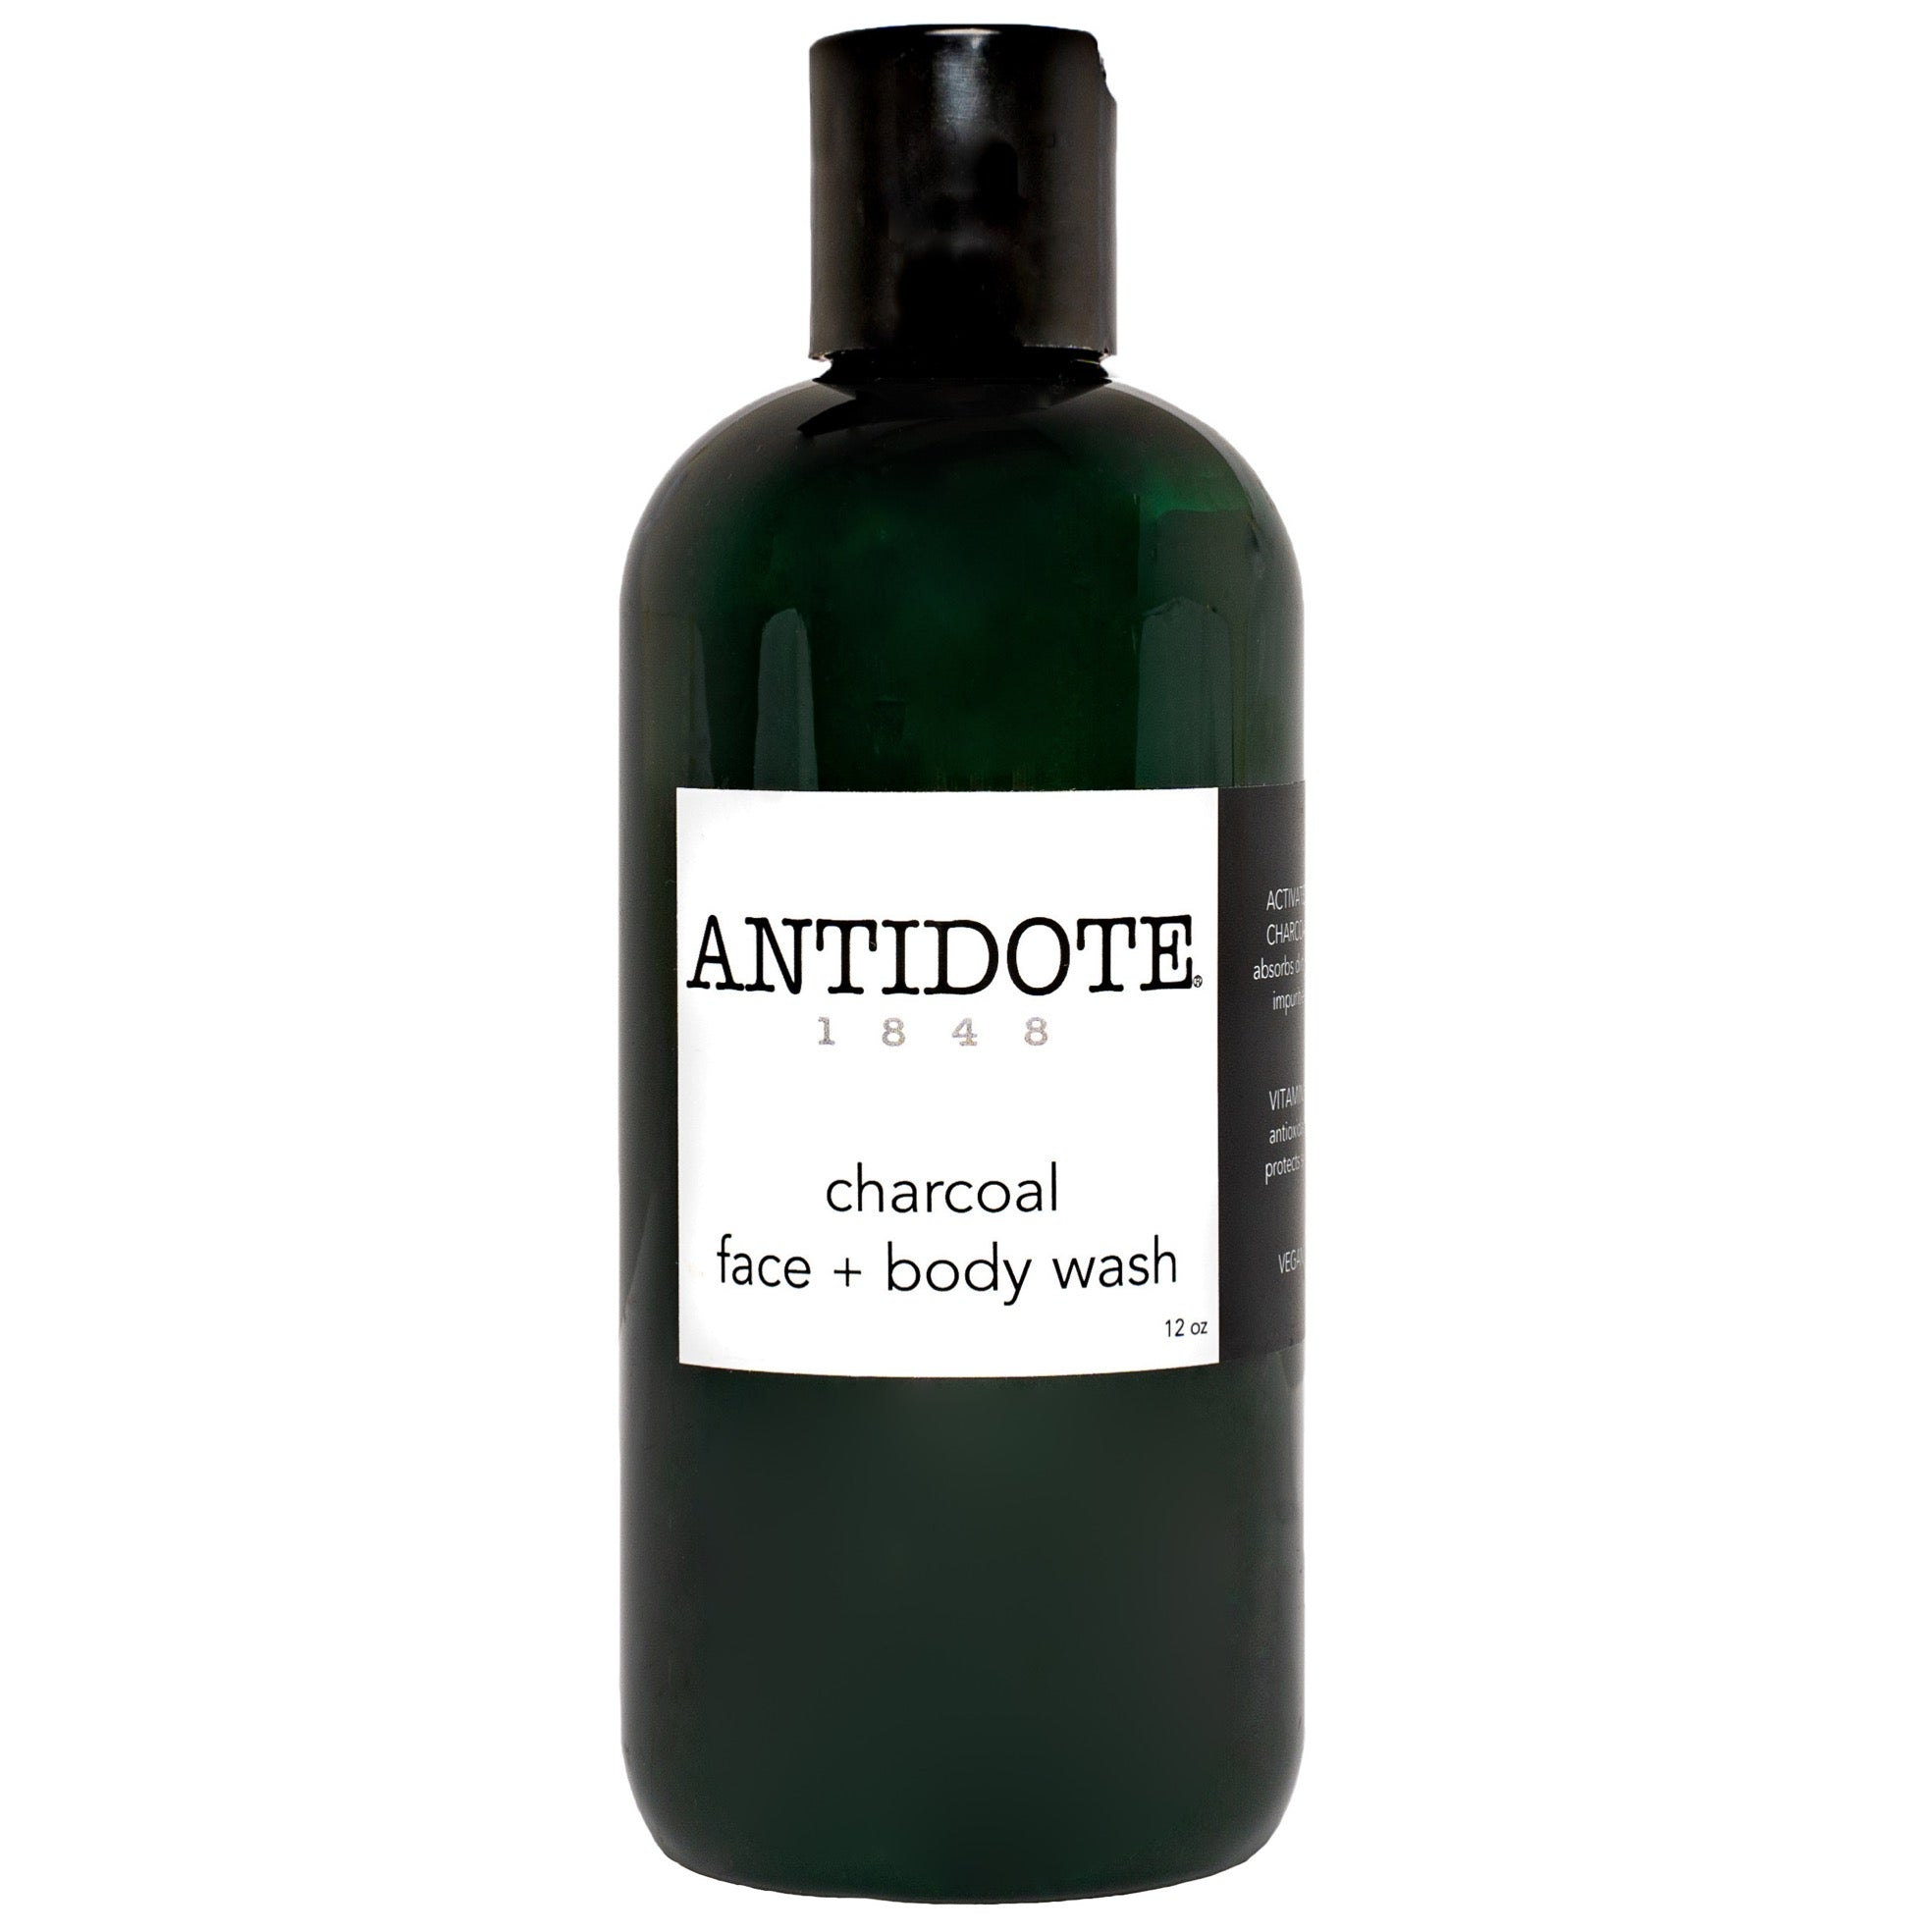 Charcoal Face + Body Wash